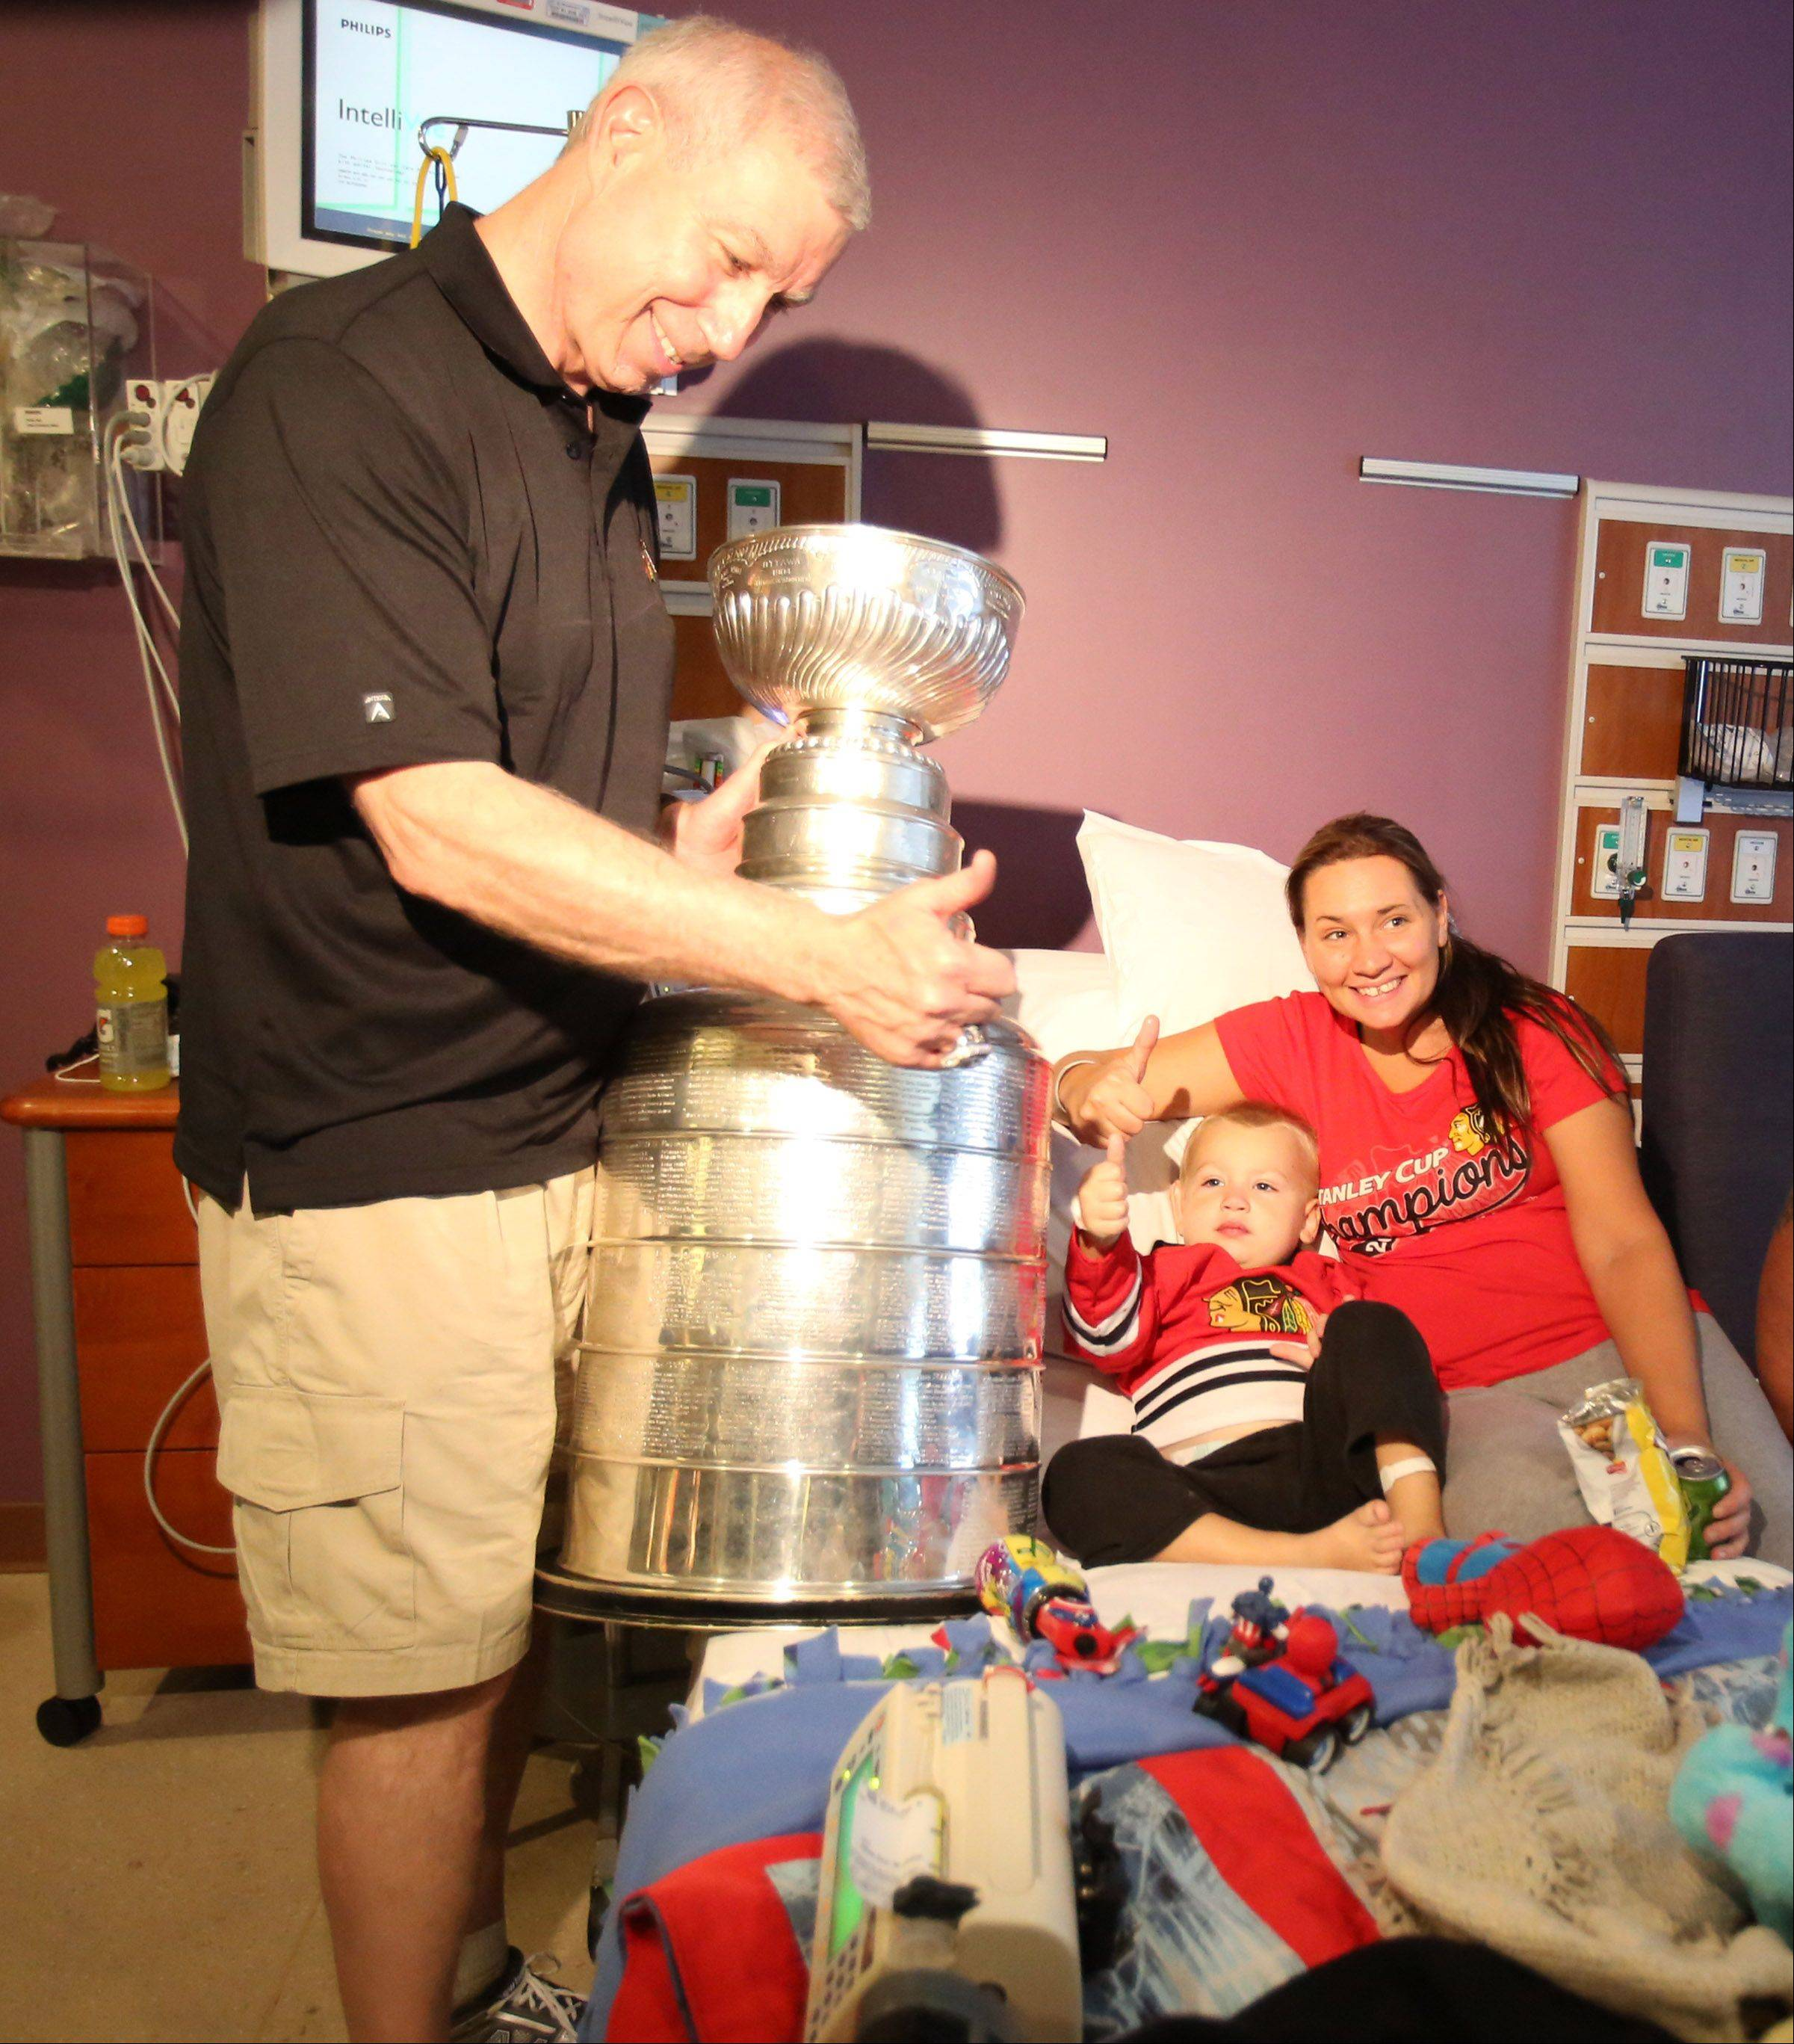 Two-year-old Brandon Hinojosa of Lake Zurich, who was diagnosed with leukemia two days ago, gives the thumbs-up when John McDonough, president and CEO of the Chicago Blackhawks brought the Stanley Cup to his room Saturday at Advocate Children's Hospital. Lying next to Brandon is his mother, Brandy.